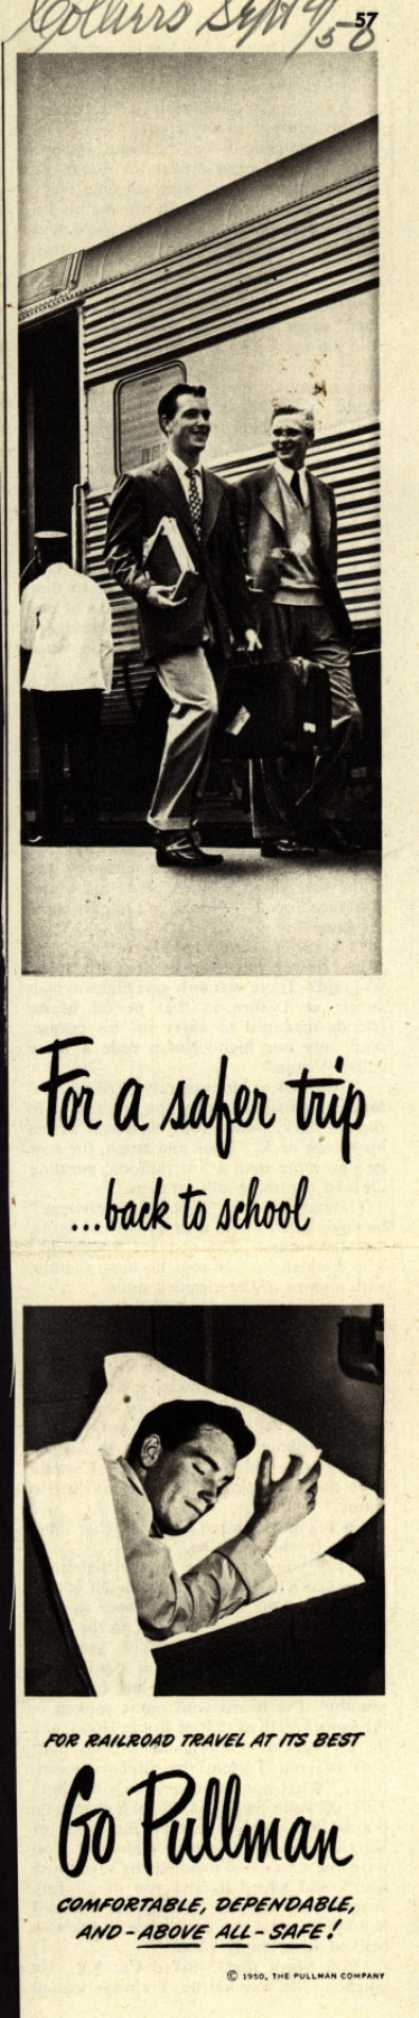 Pullman Company – For a safer trip ...back to school. For Railroad Travel At Its Best Go Pullman. Comfortable, Dependable, And- Above All -Safe (1950)